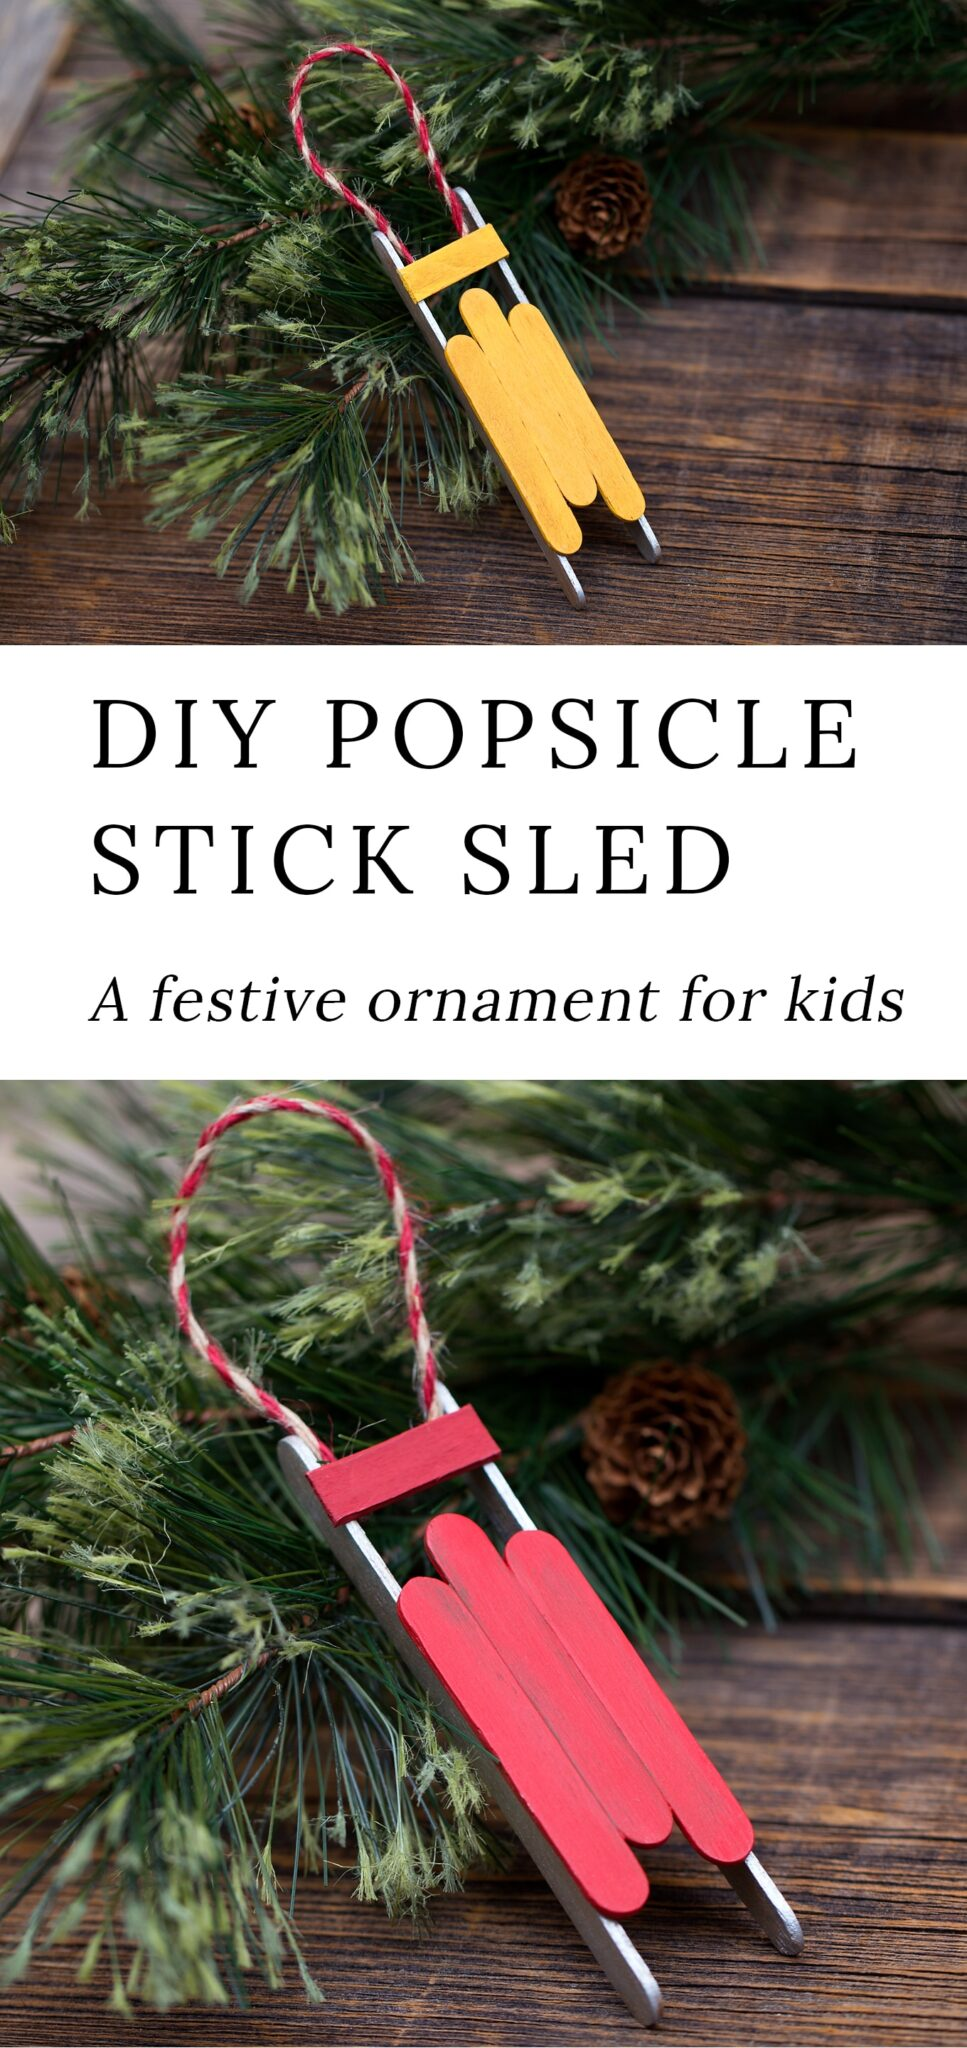 Just in time for Christmas, learn how to make a DIY wooden popsicle stick sled ornament with craft sticks, glue, and paint. This simple holiday craft for kids is perfect for home or school! #sled #ornament via @firefliesandmudpies